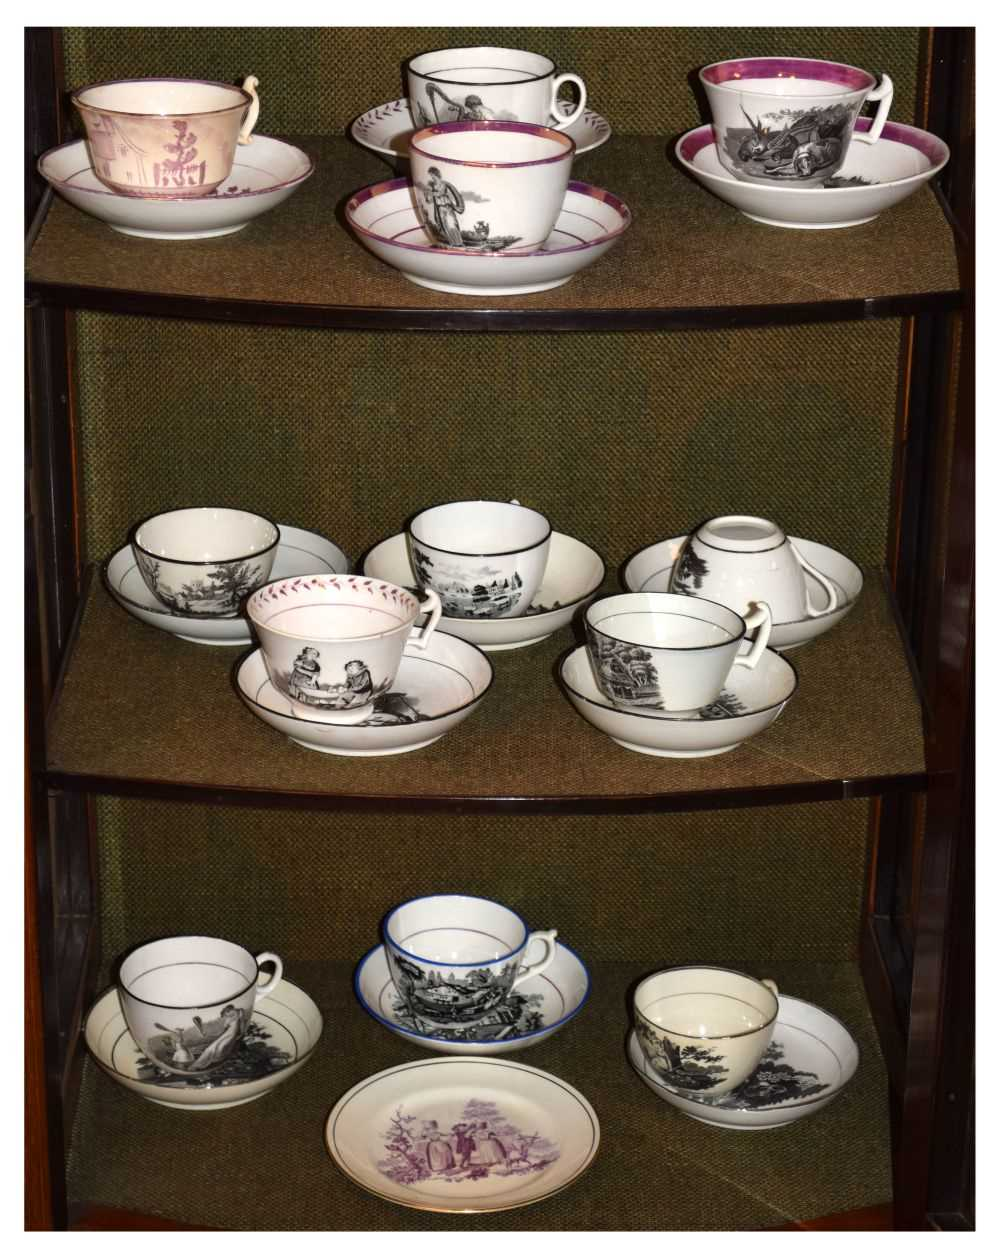 Quantity of late 18th Century / early 19th Century tea ware